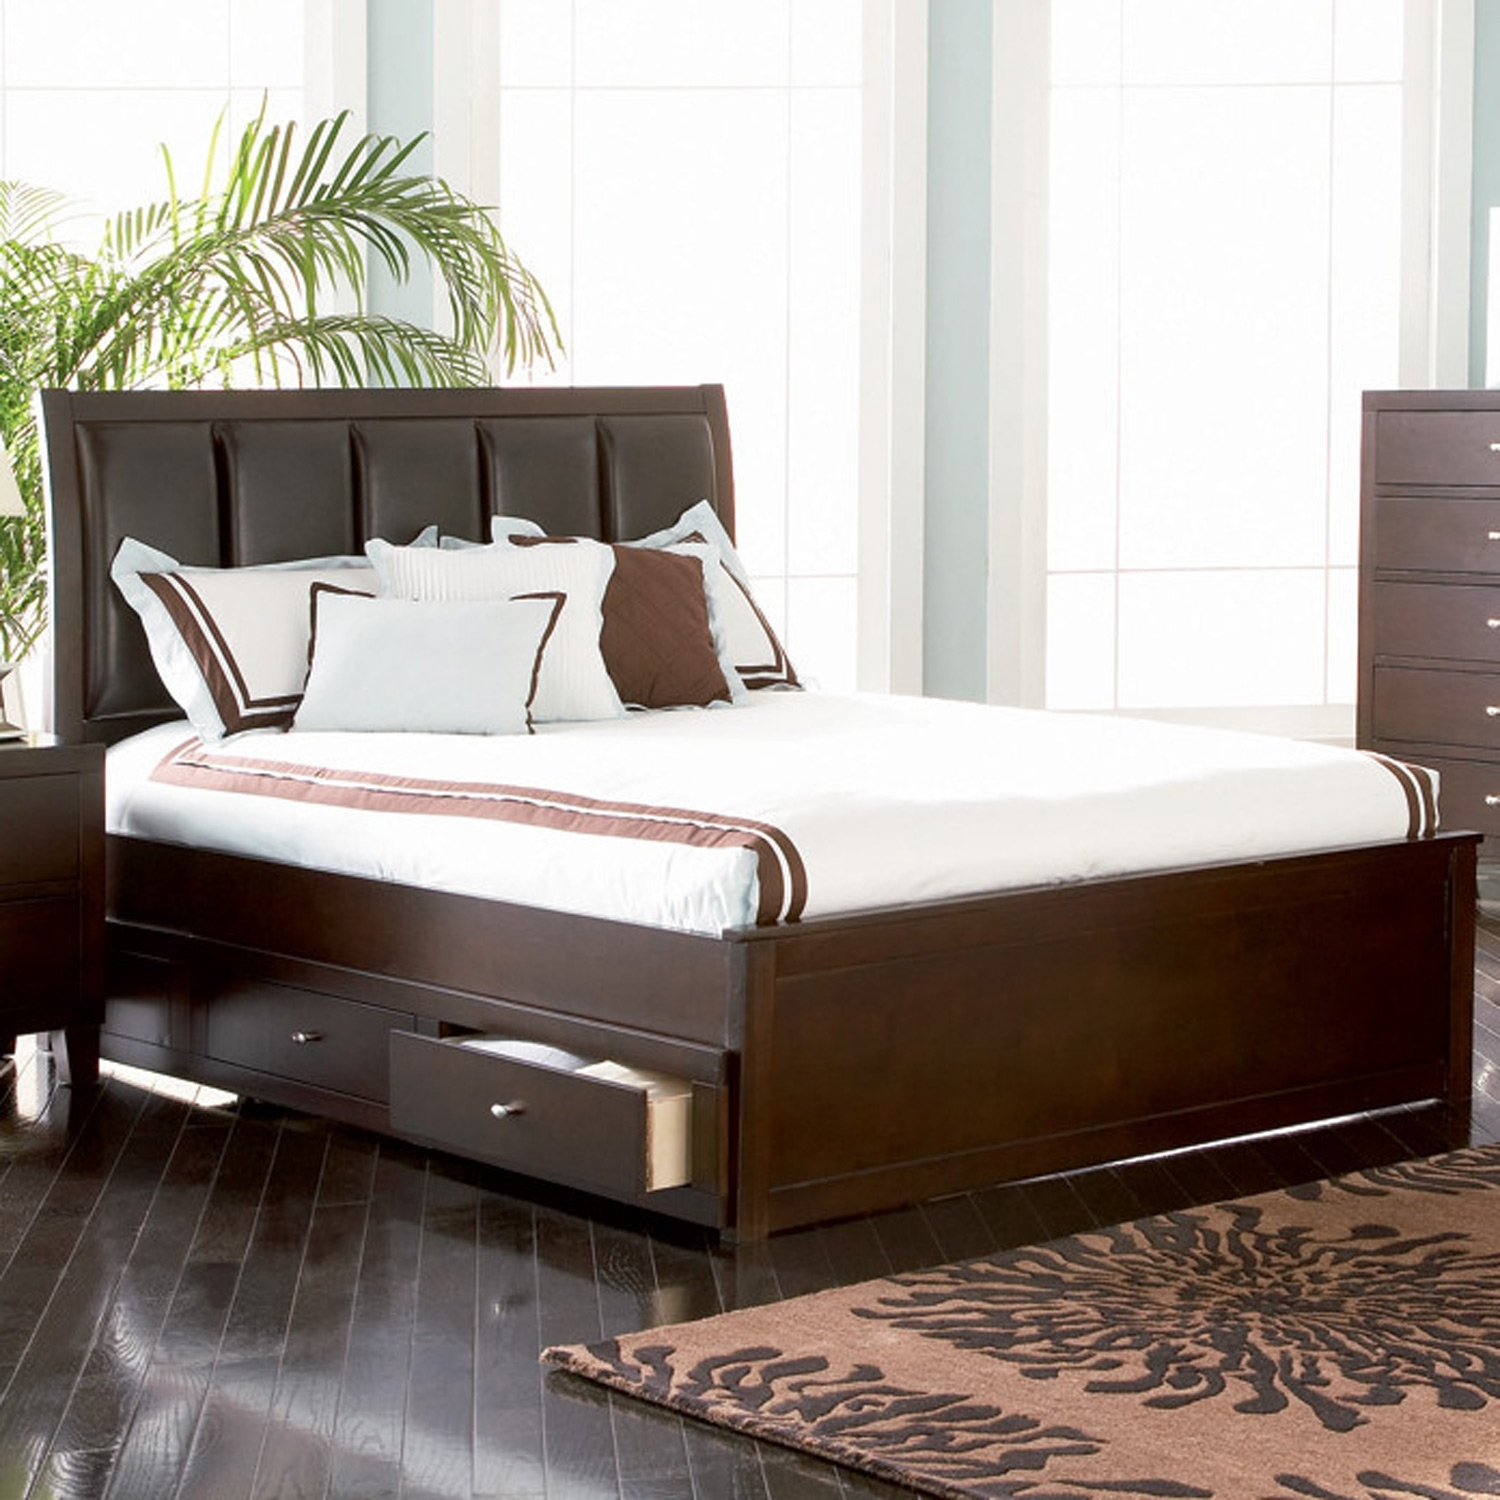 Upholstered Bed Frame With Storage Drawers